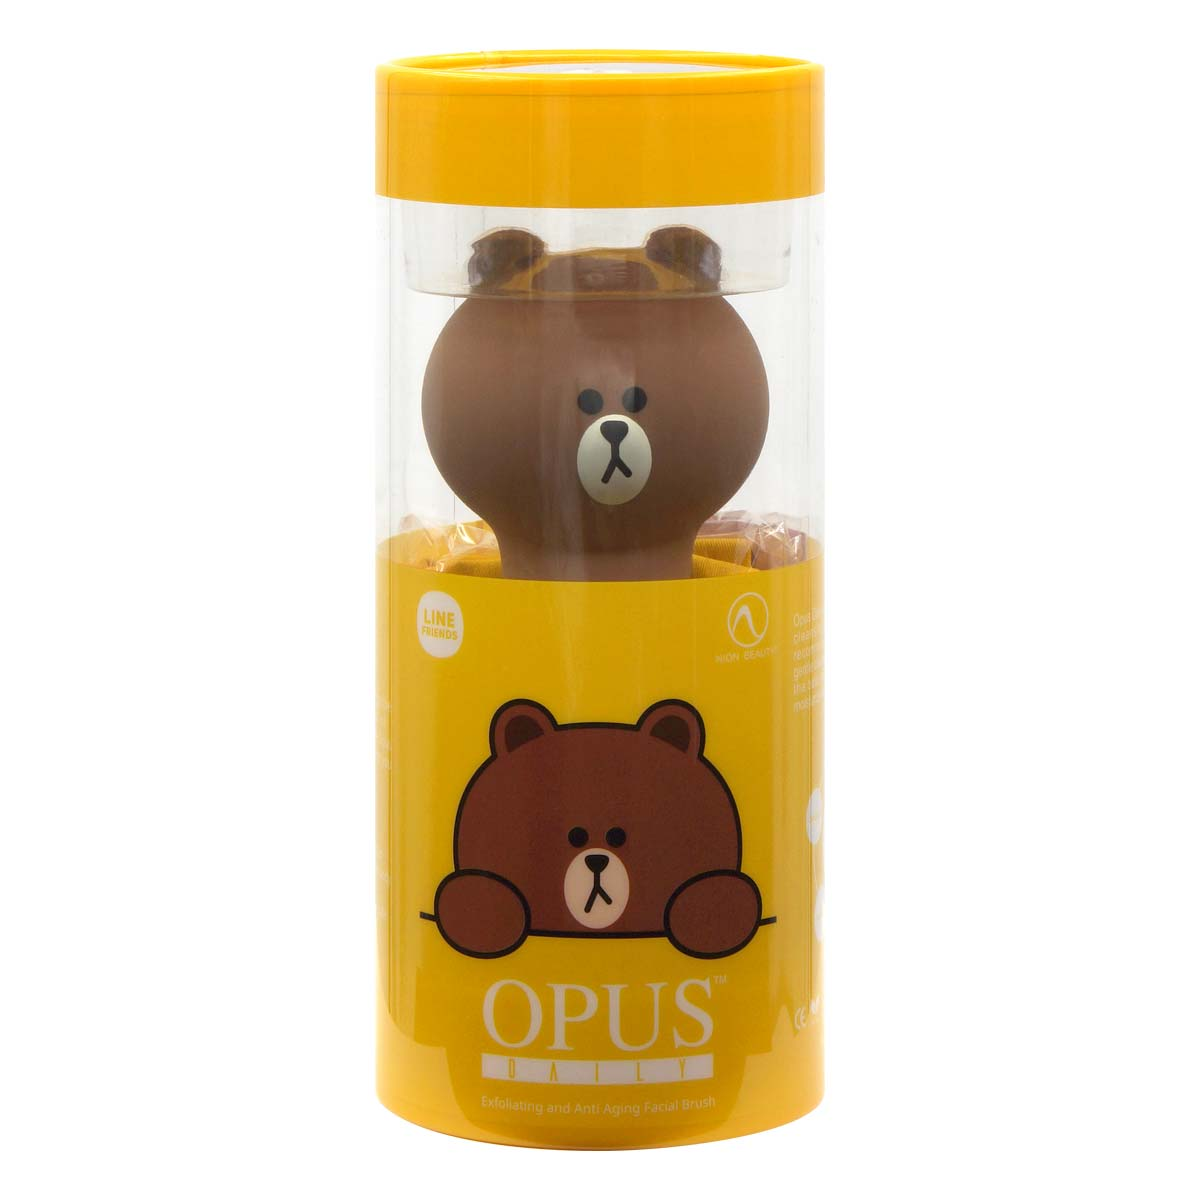 Line Friends Opus Daily Exfoliating and Anti Aging Facial Brush (Brown)